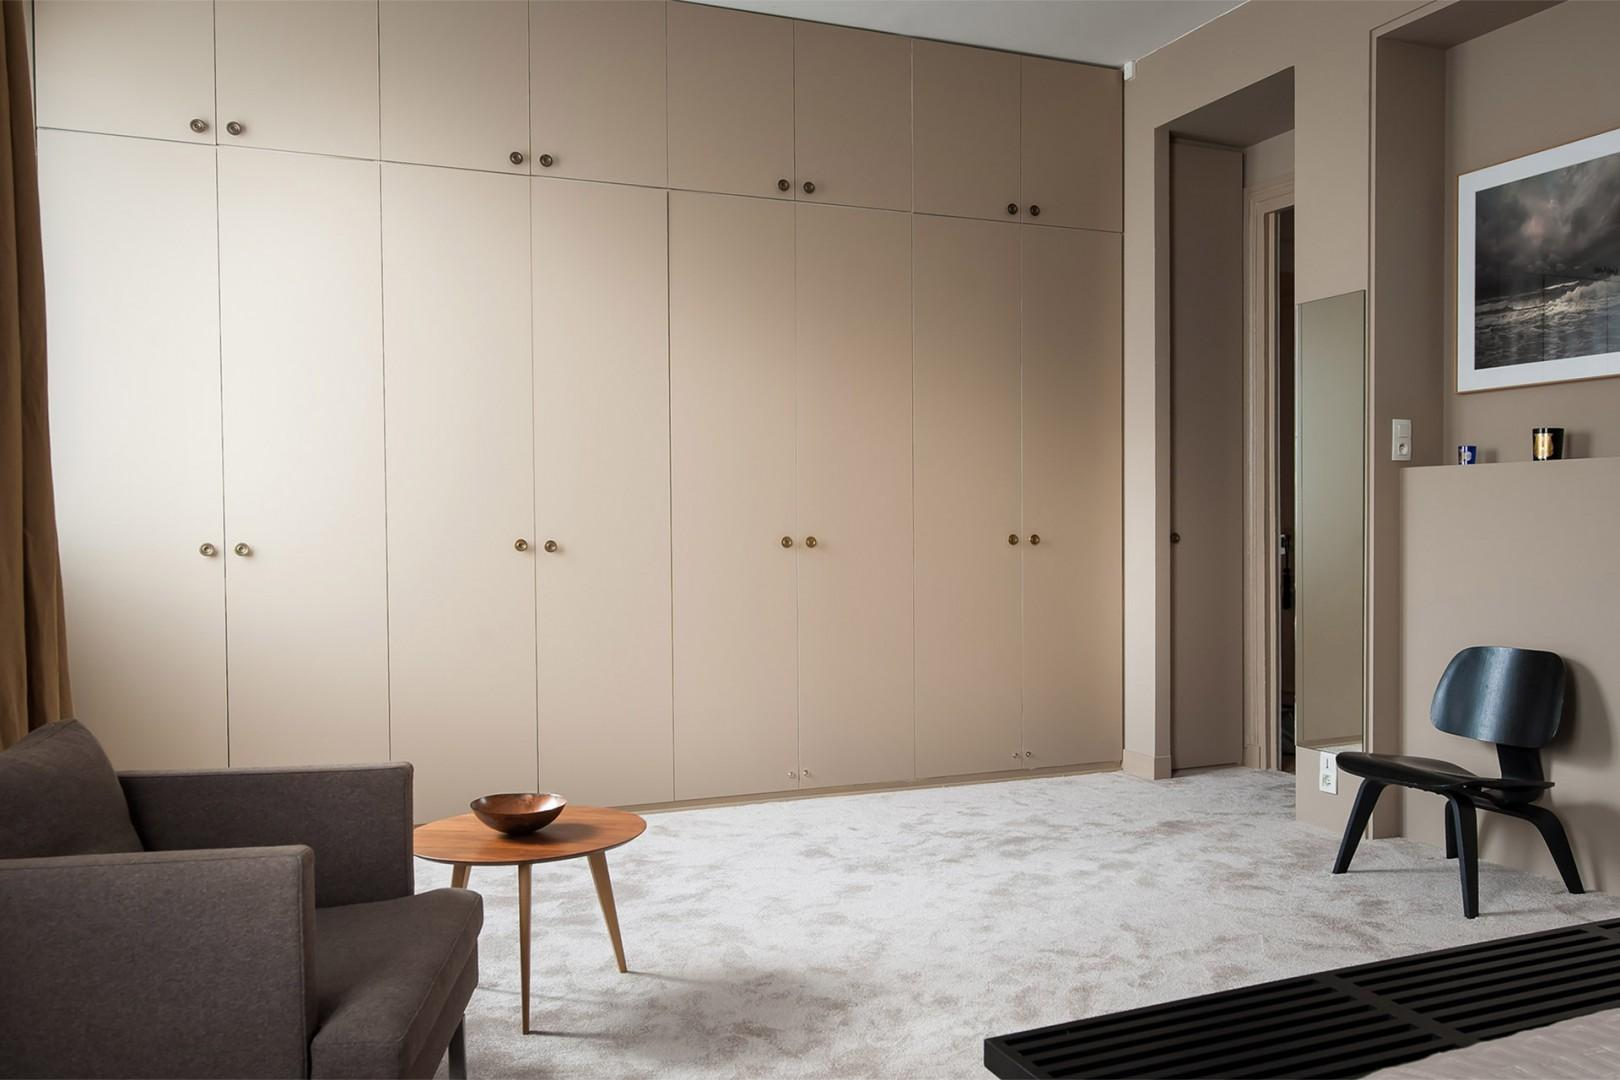 There are ample built-in closets in bedroom 1.